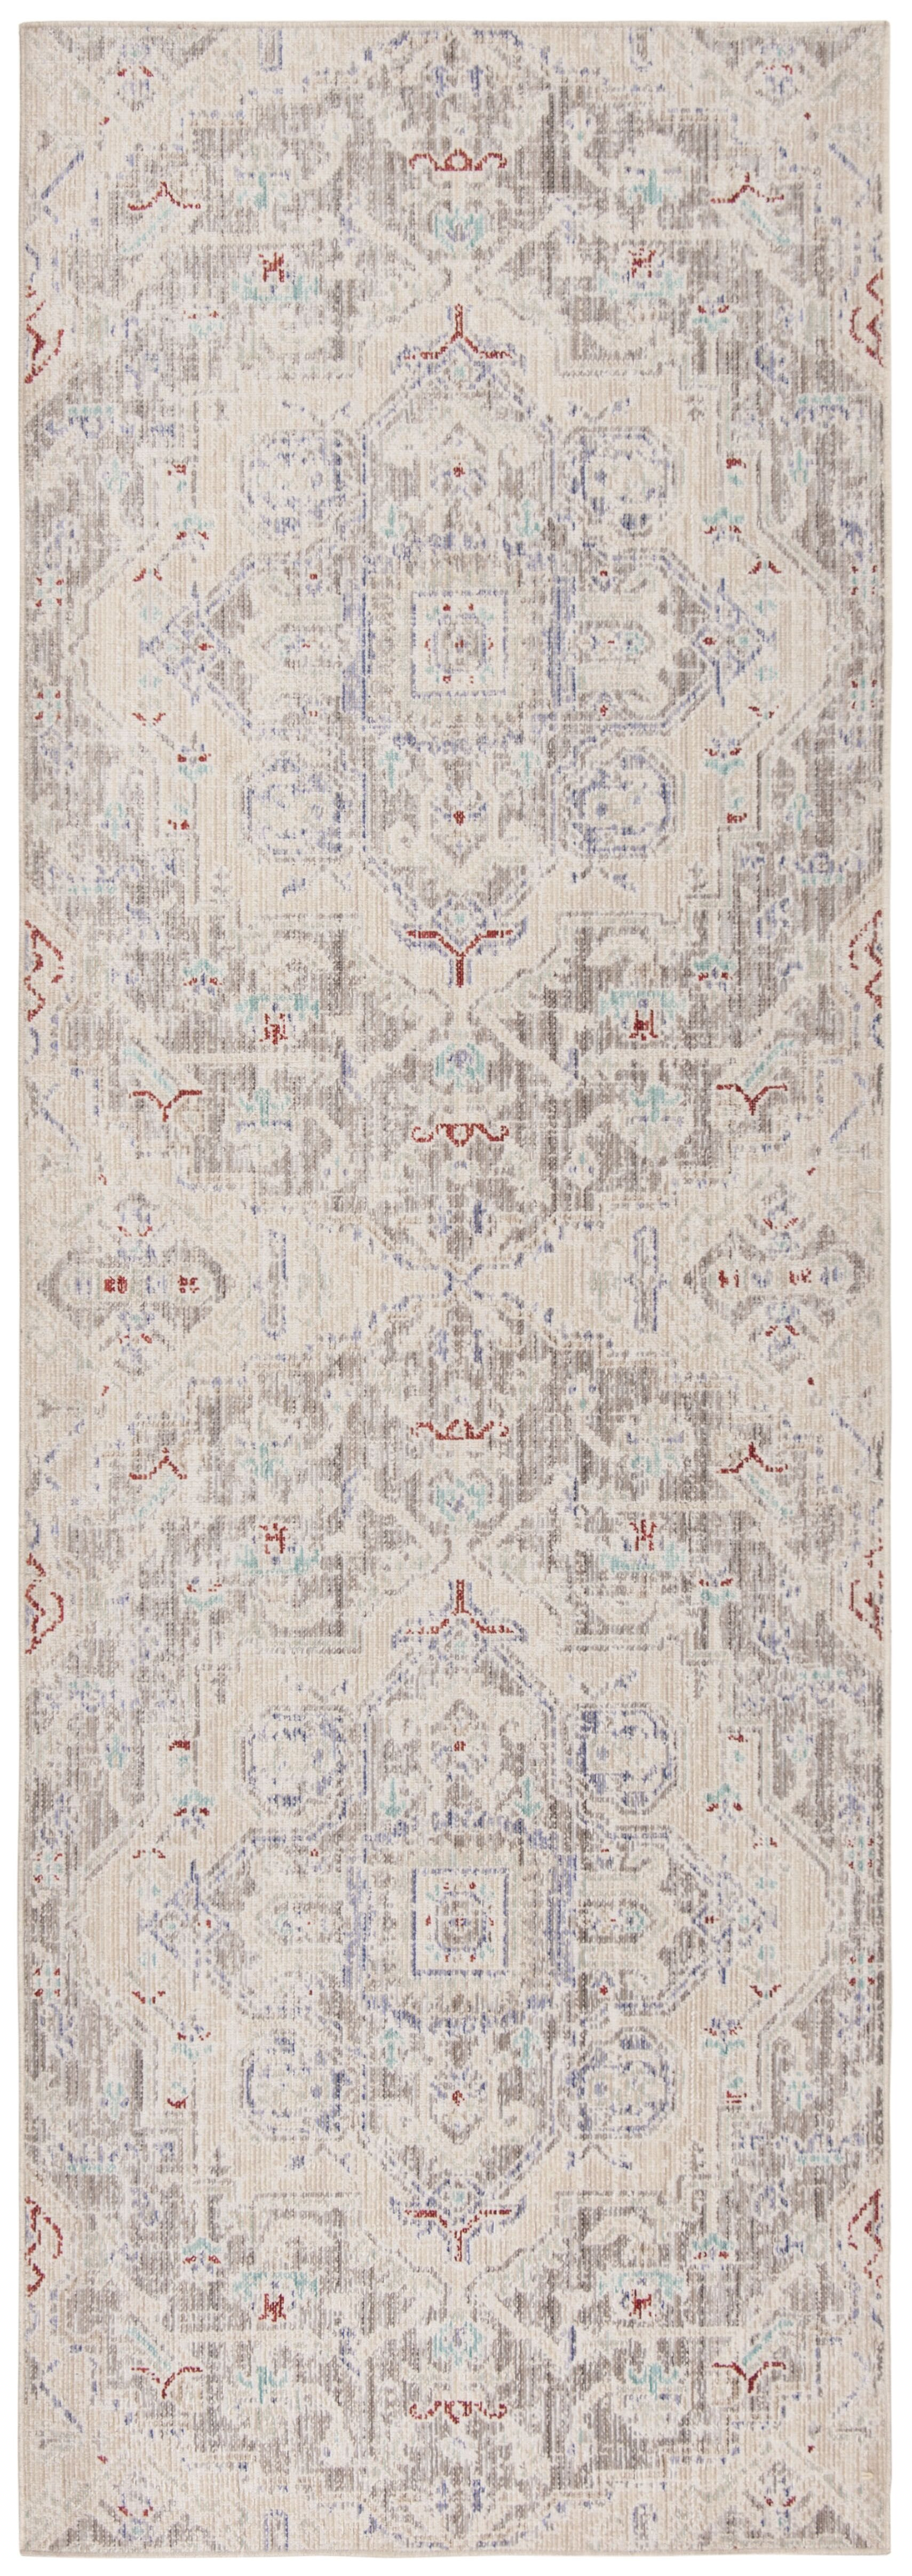 Chauncey Light Gray Area Rug Rug Size: Rectangle 3' x 8'